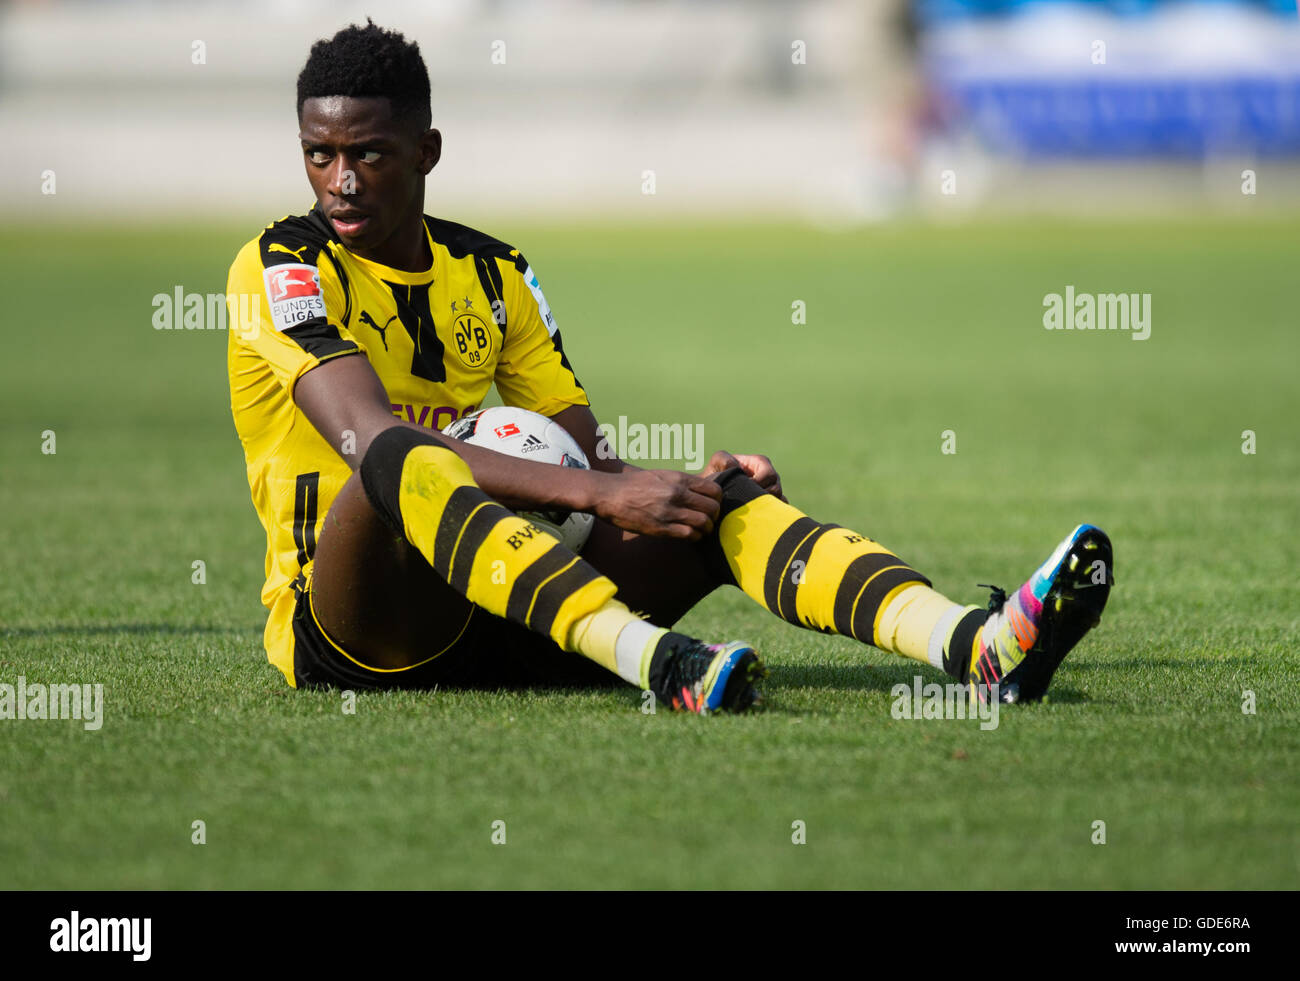 Munich, Germany. 16th July, 2016. Ousmane Dembele of premiere league team Borussia Dortmund sits on the ground in - Stock Image